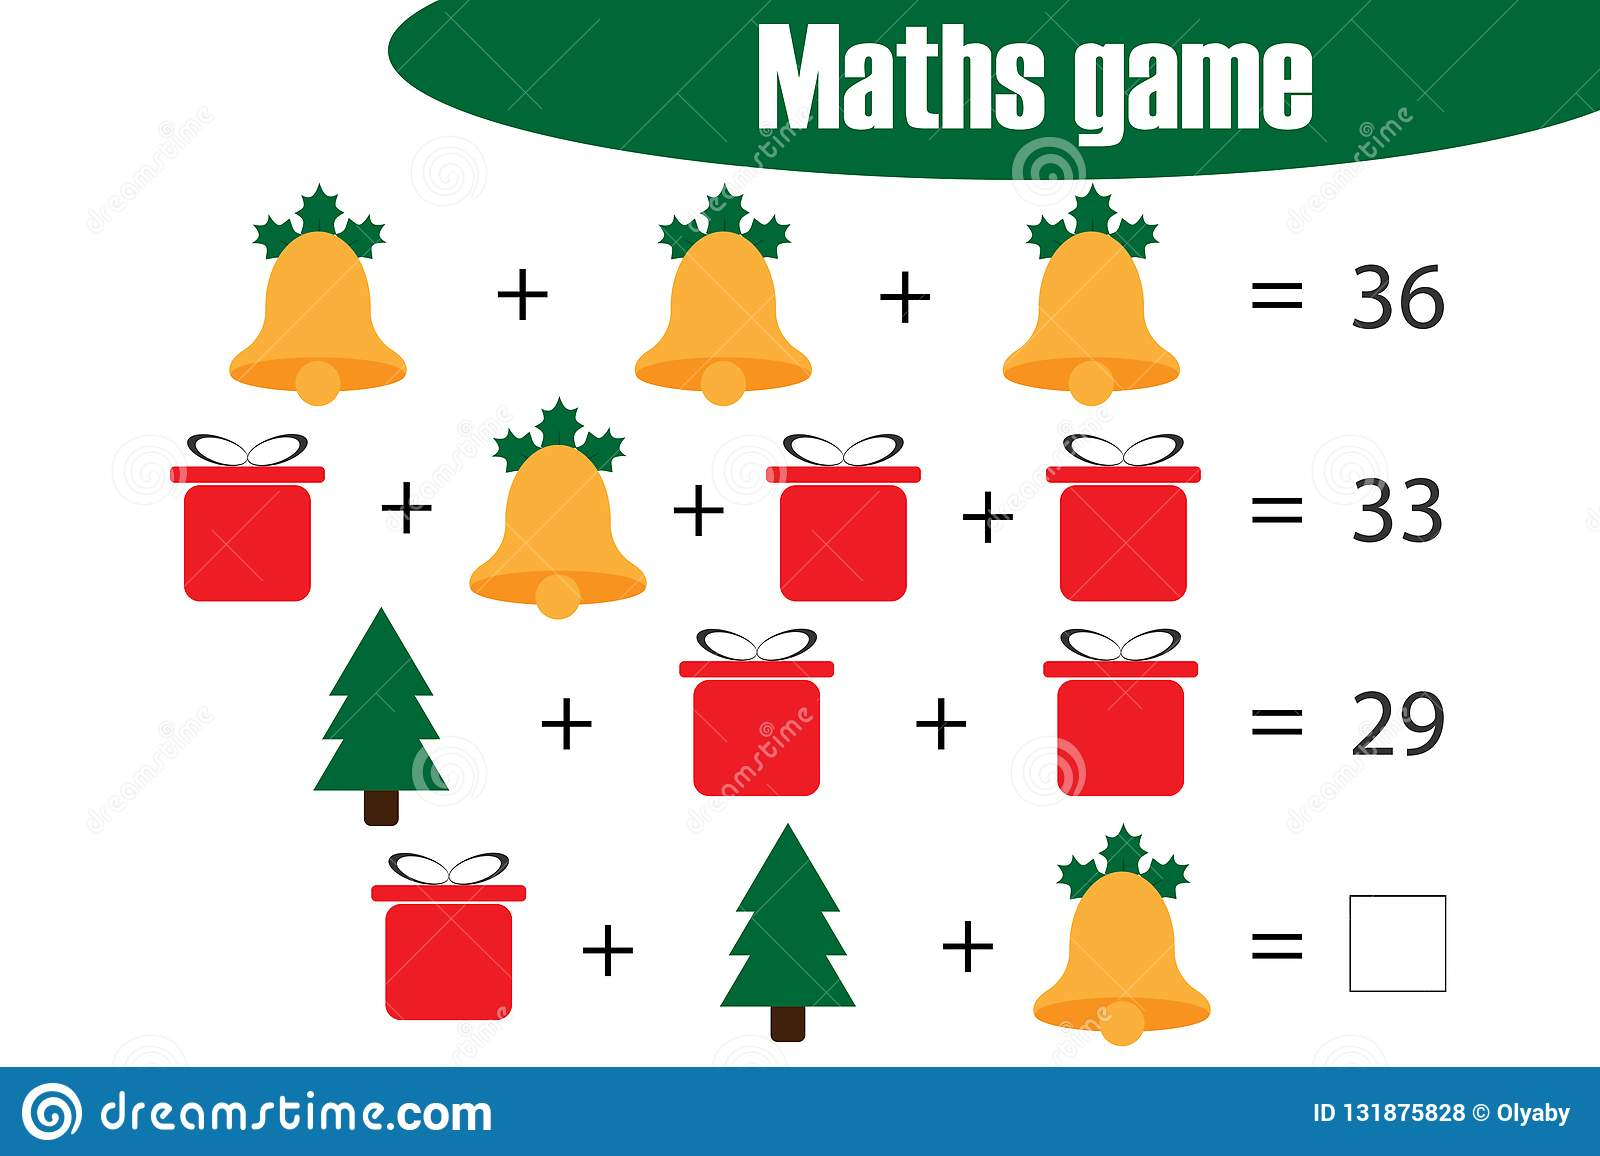 Xmas Maths Game With Pictures